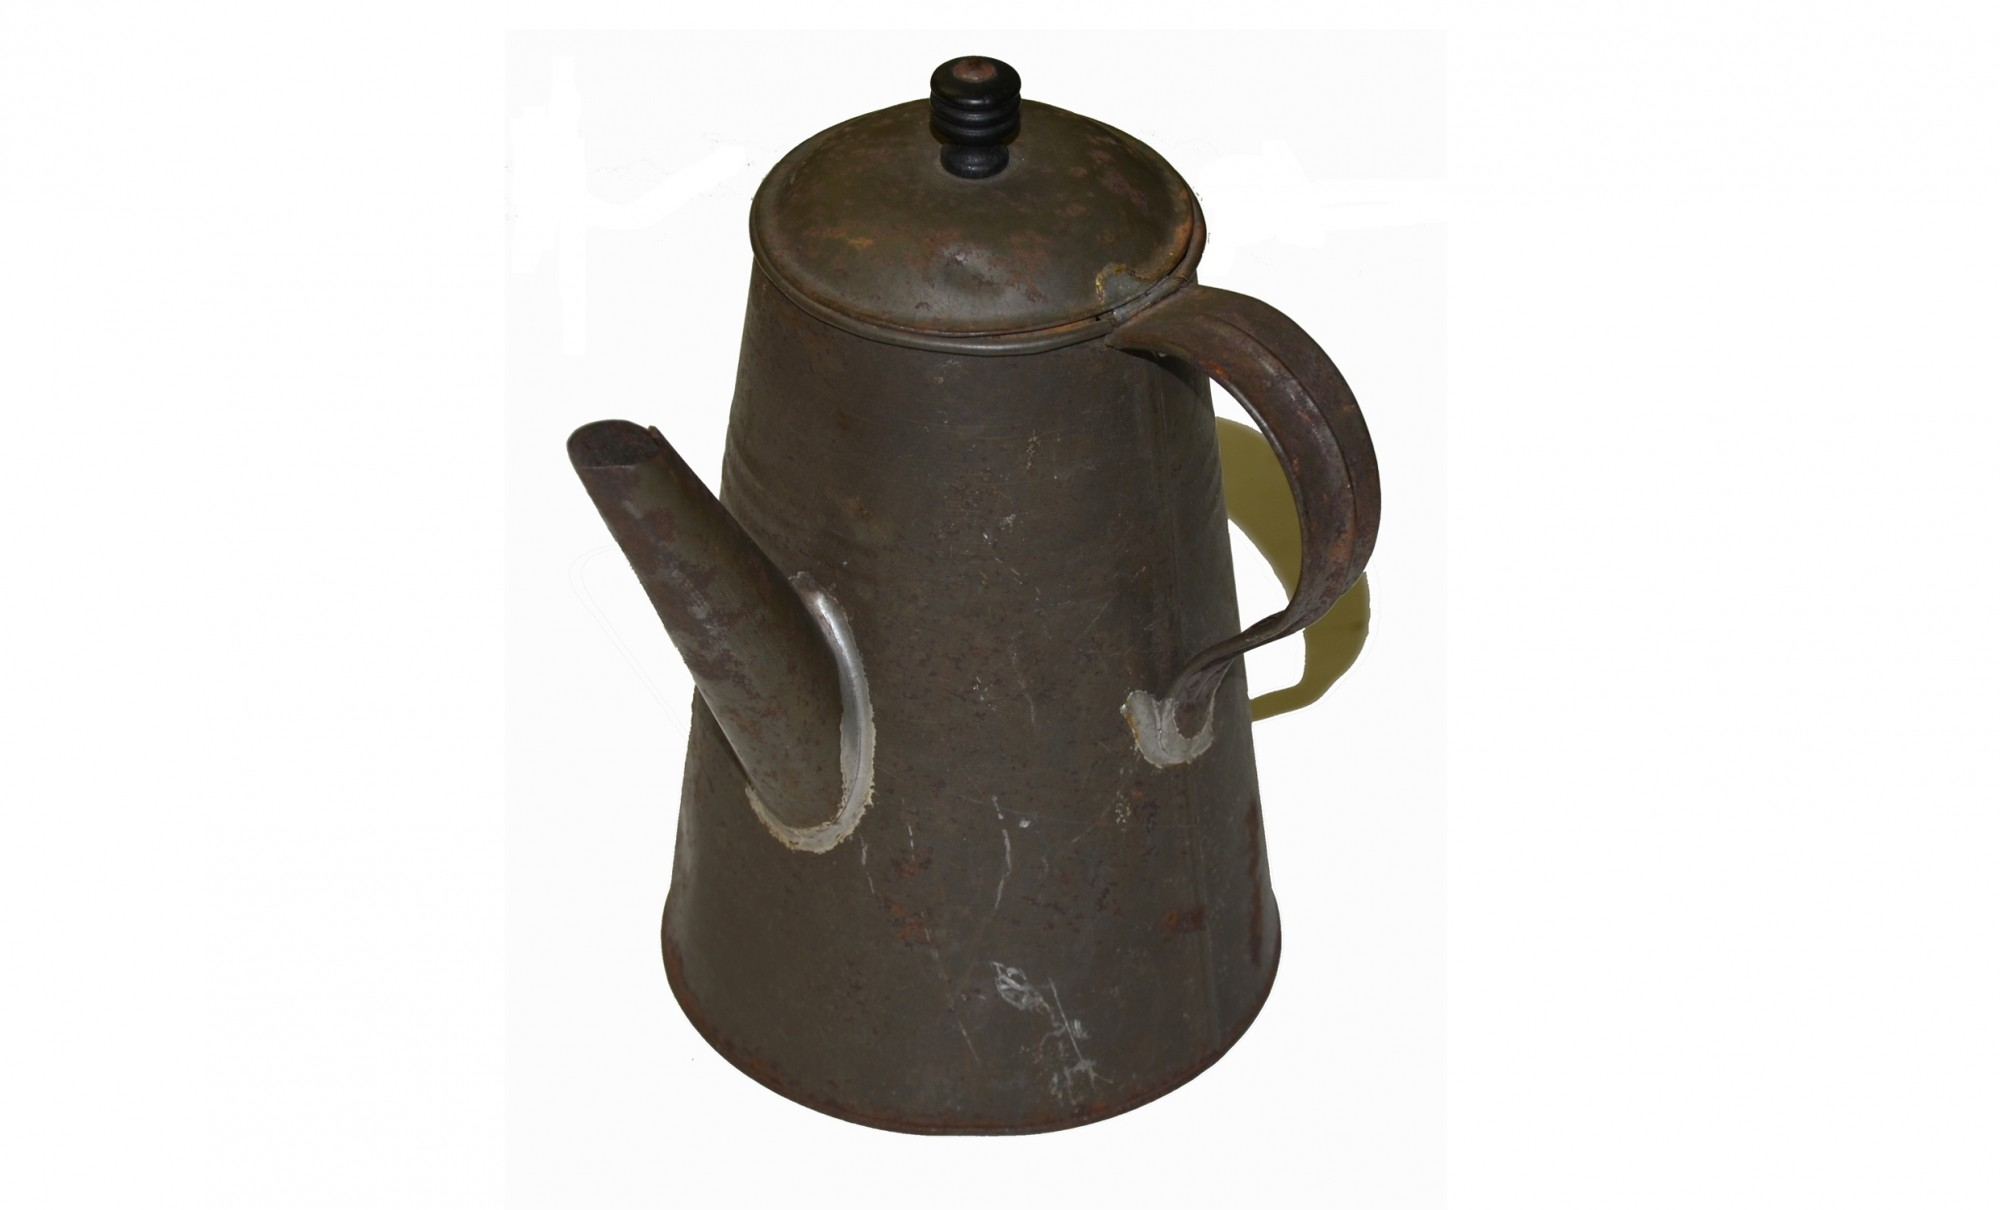 TIN COFFEE POT, CIVIL WAR ERA